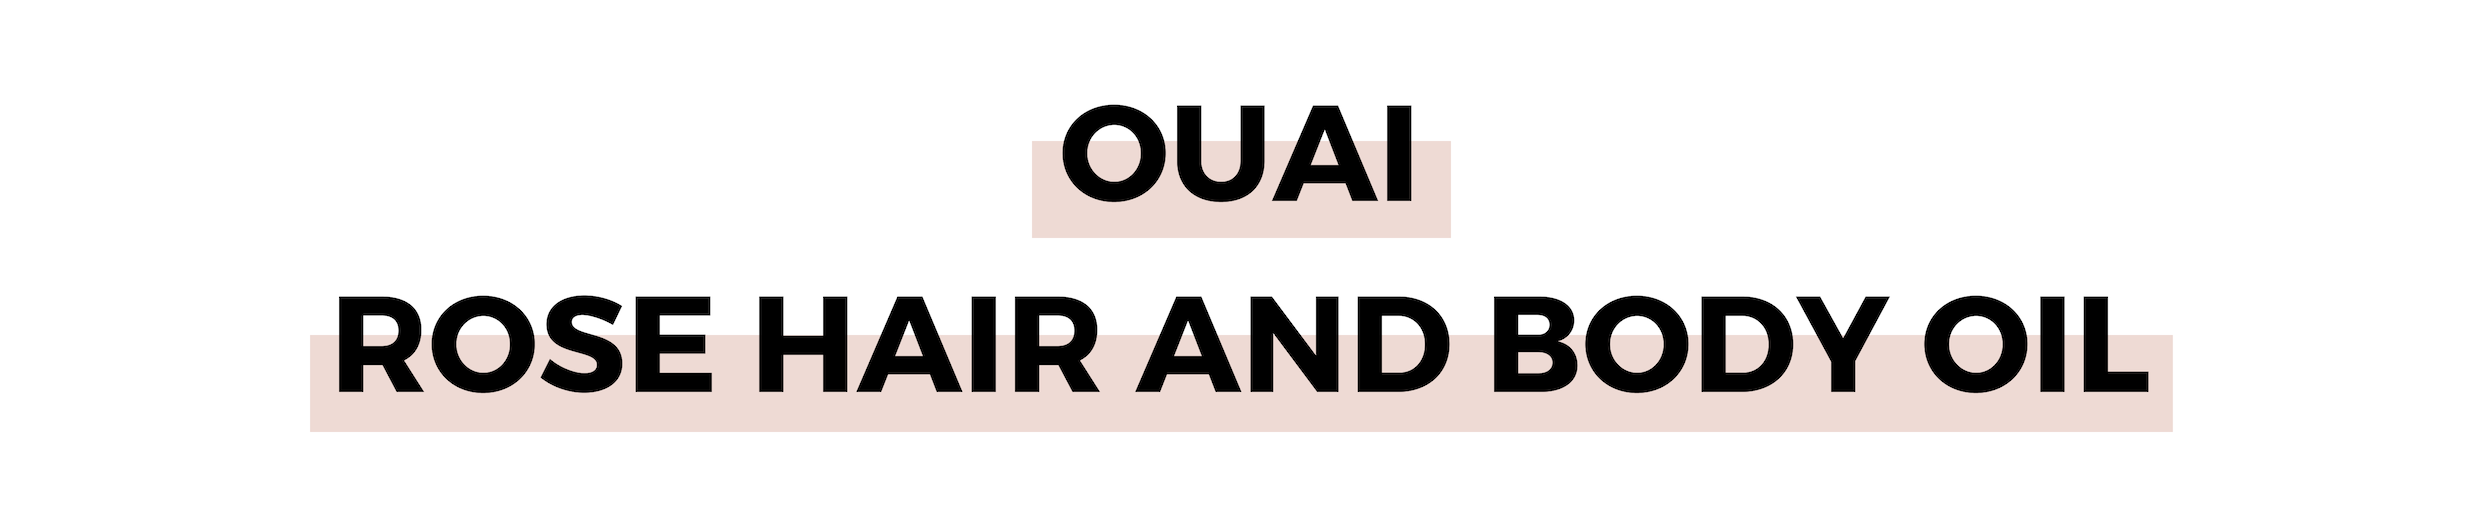 OUAI ROSE HAIR AND BODY OIL (1).png